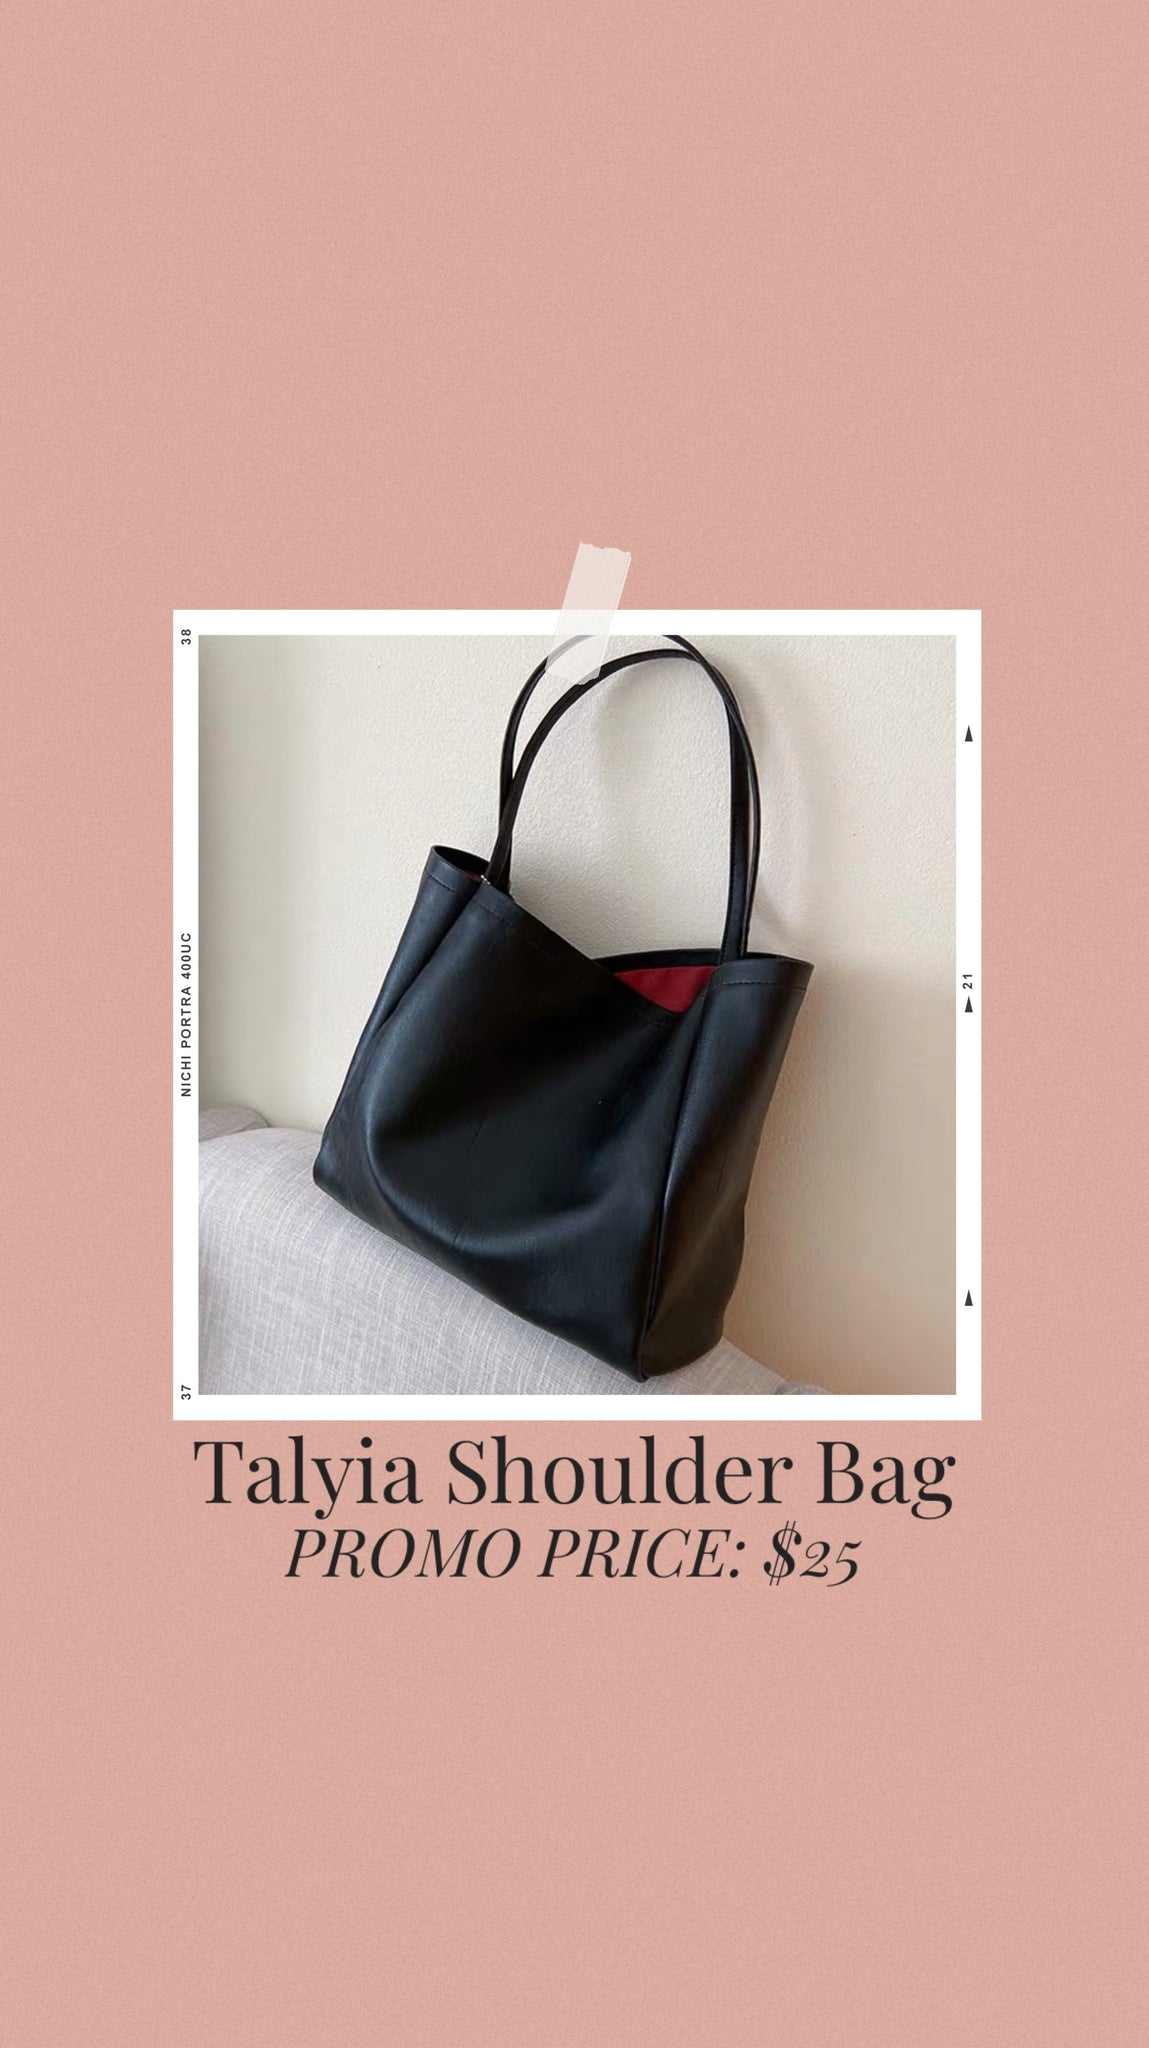 Talyia Shoulder Bag